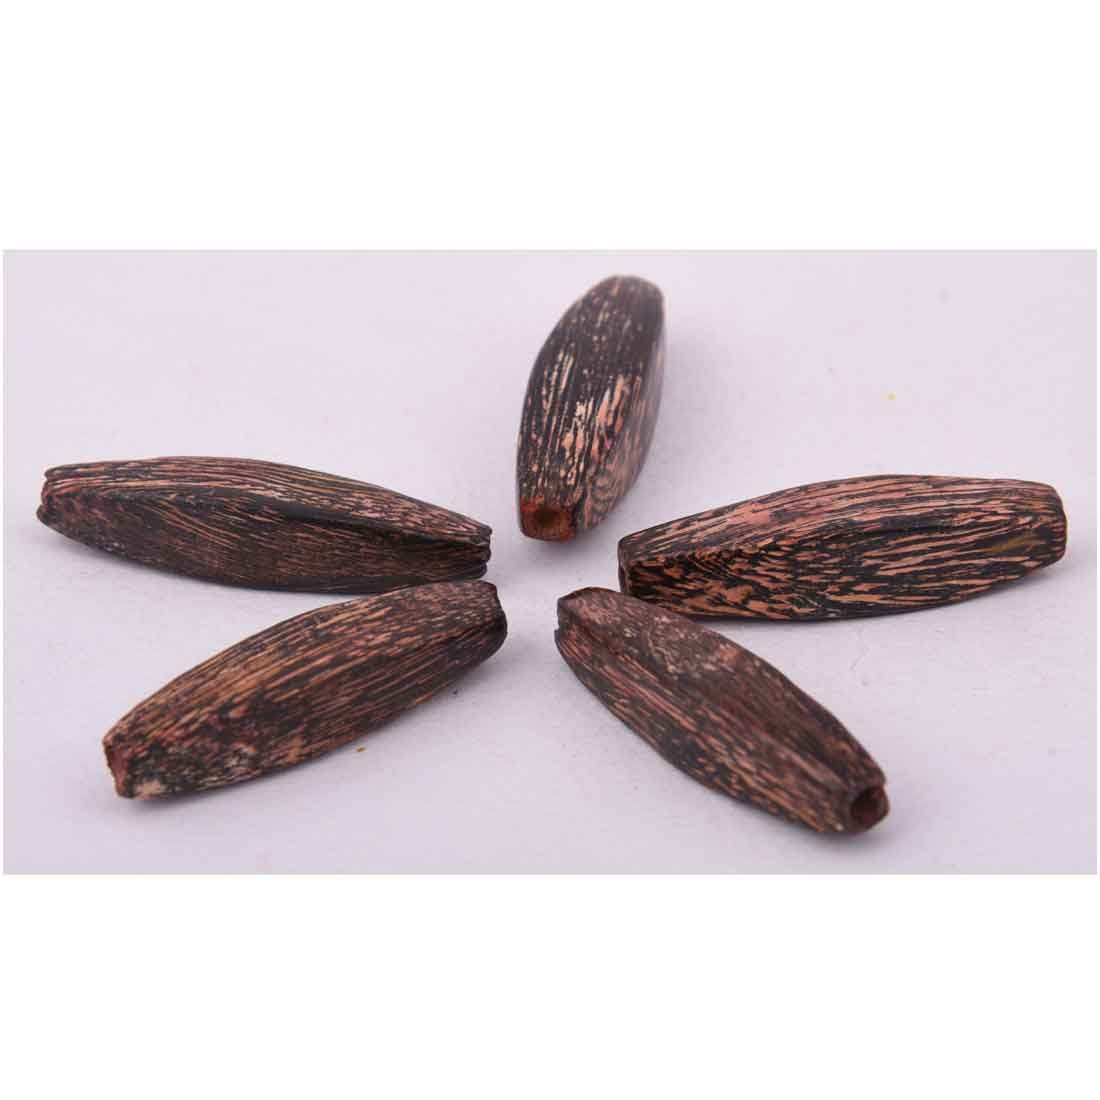 Beads India 1700098 Handcrafted Wooden Beads/Discounts Above 500 pcs